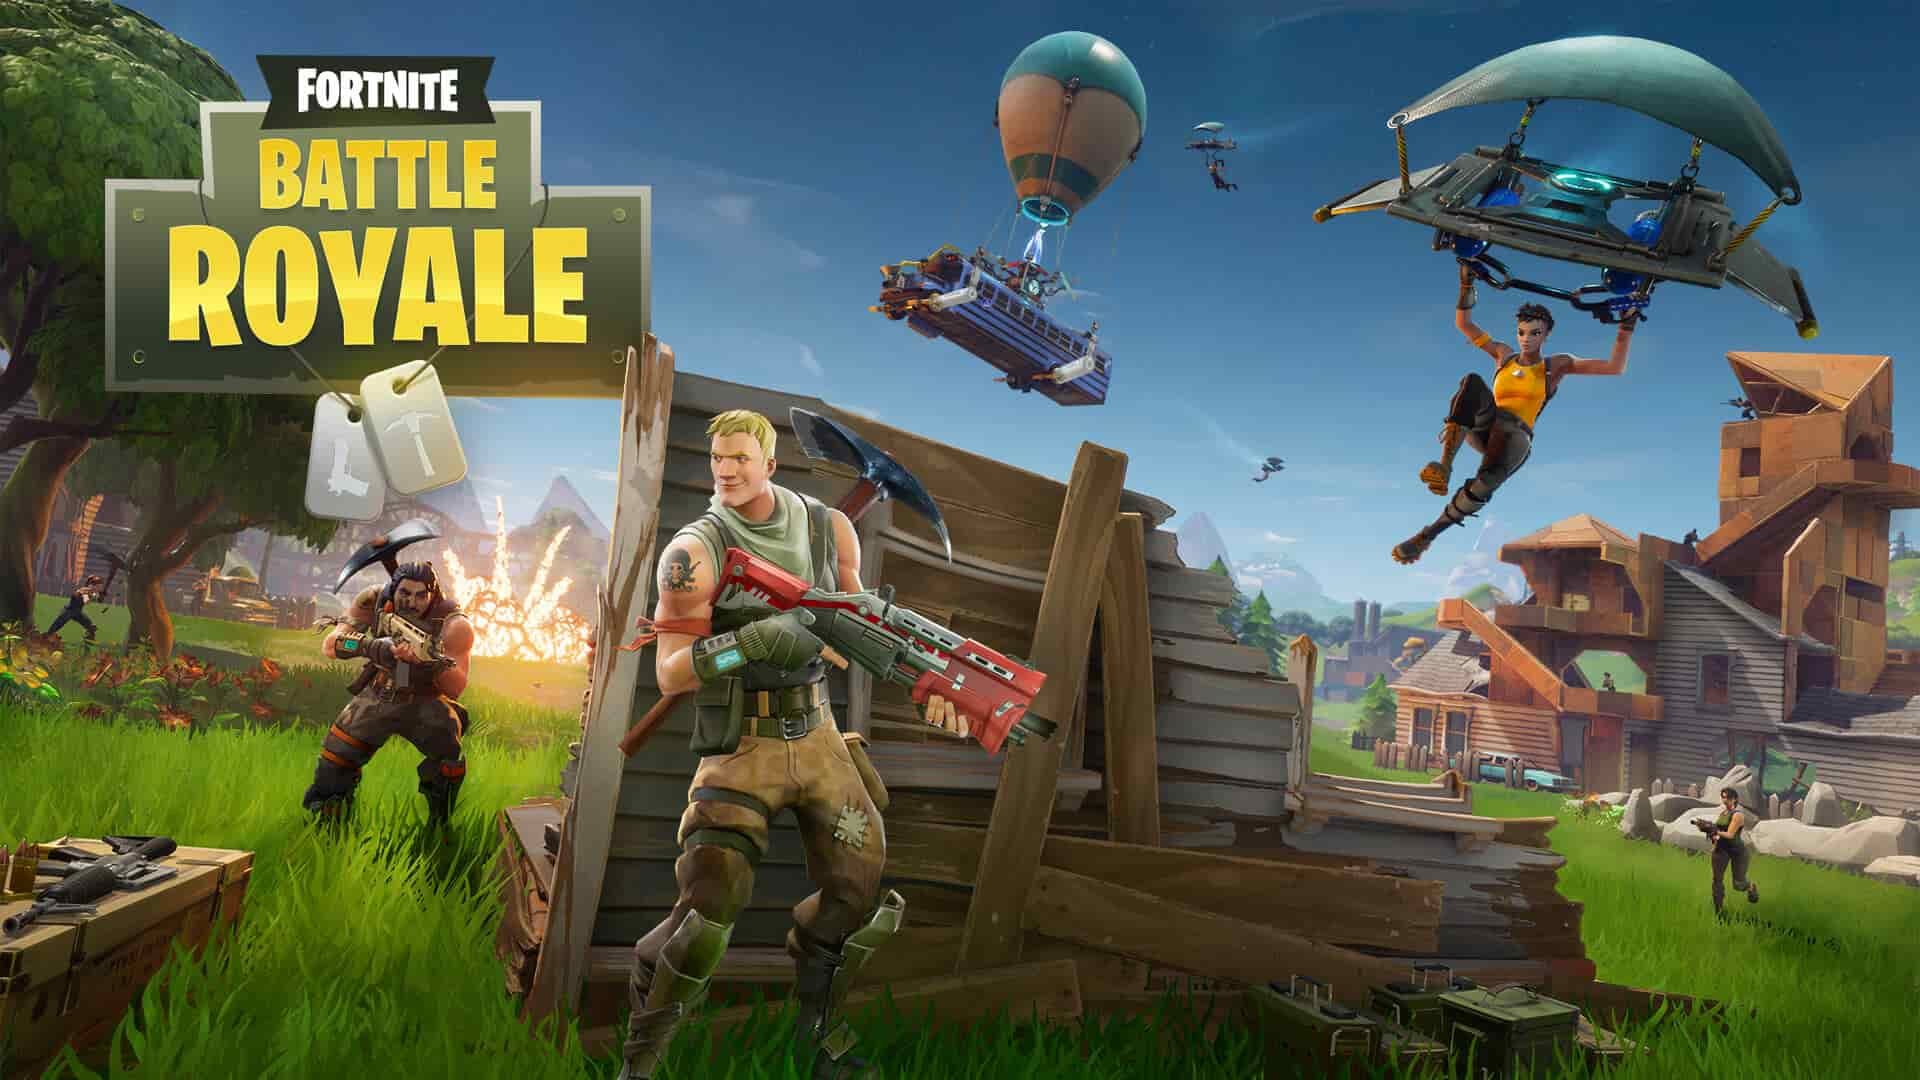 Fortnite 3.4.1 Update